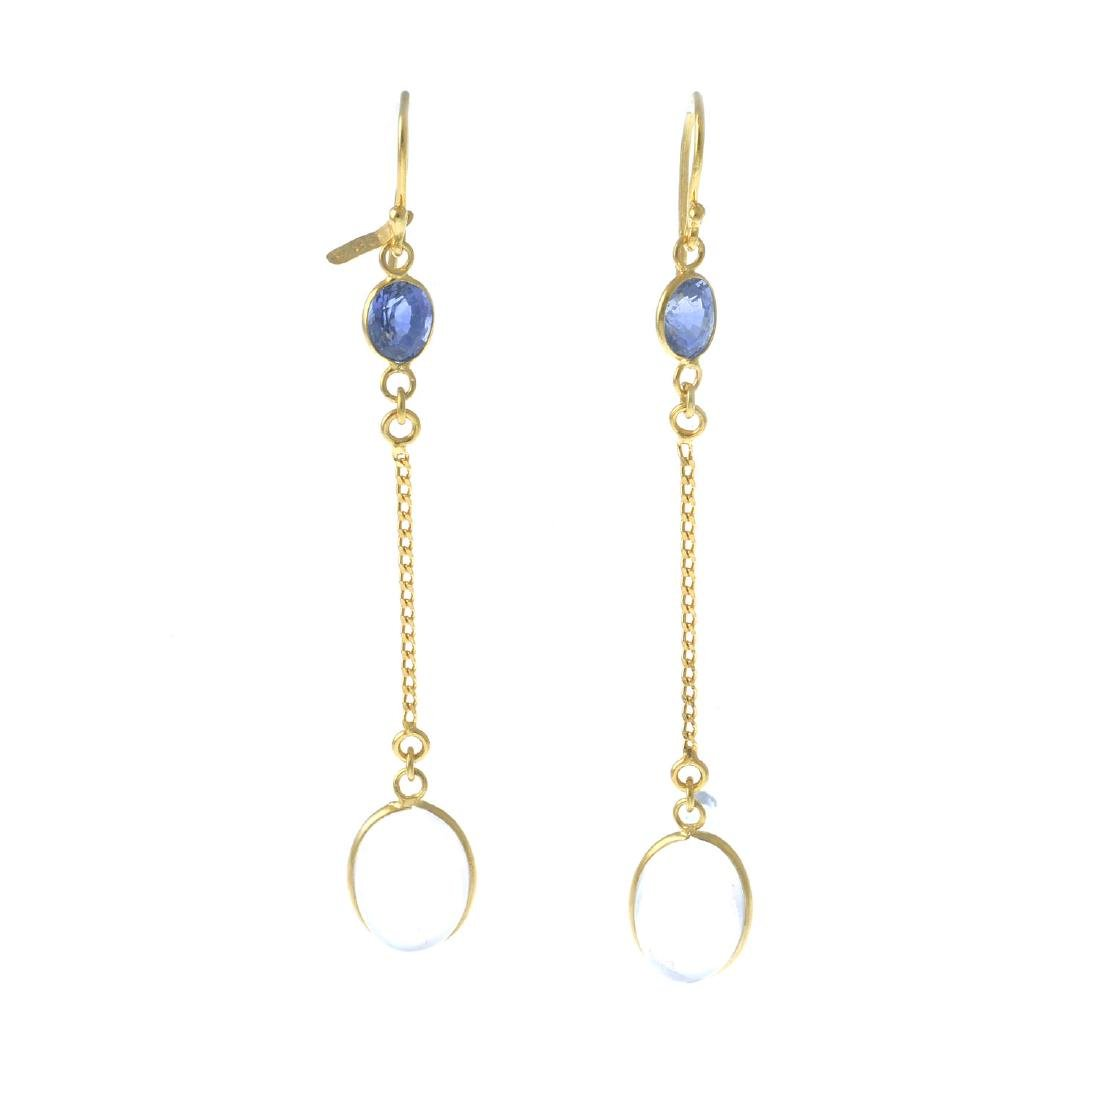 A pair of moonstone and sapphire earrings. Each